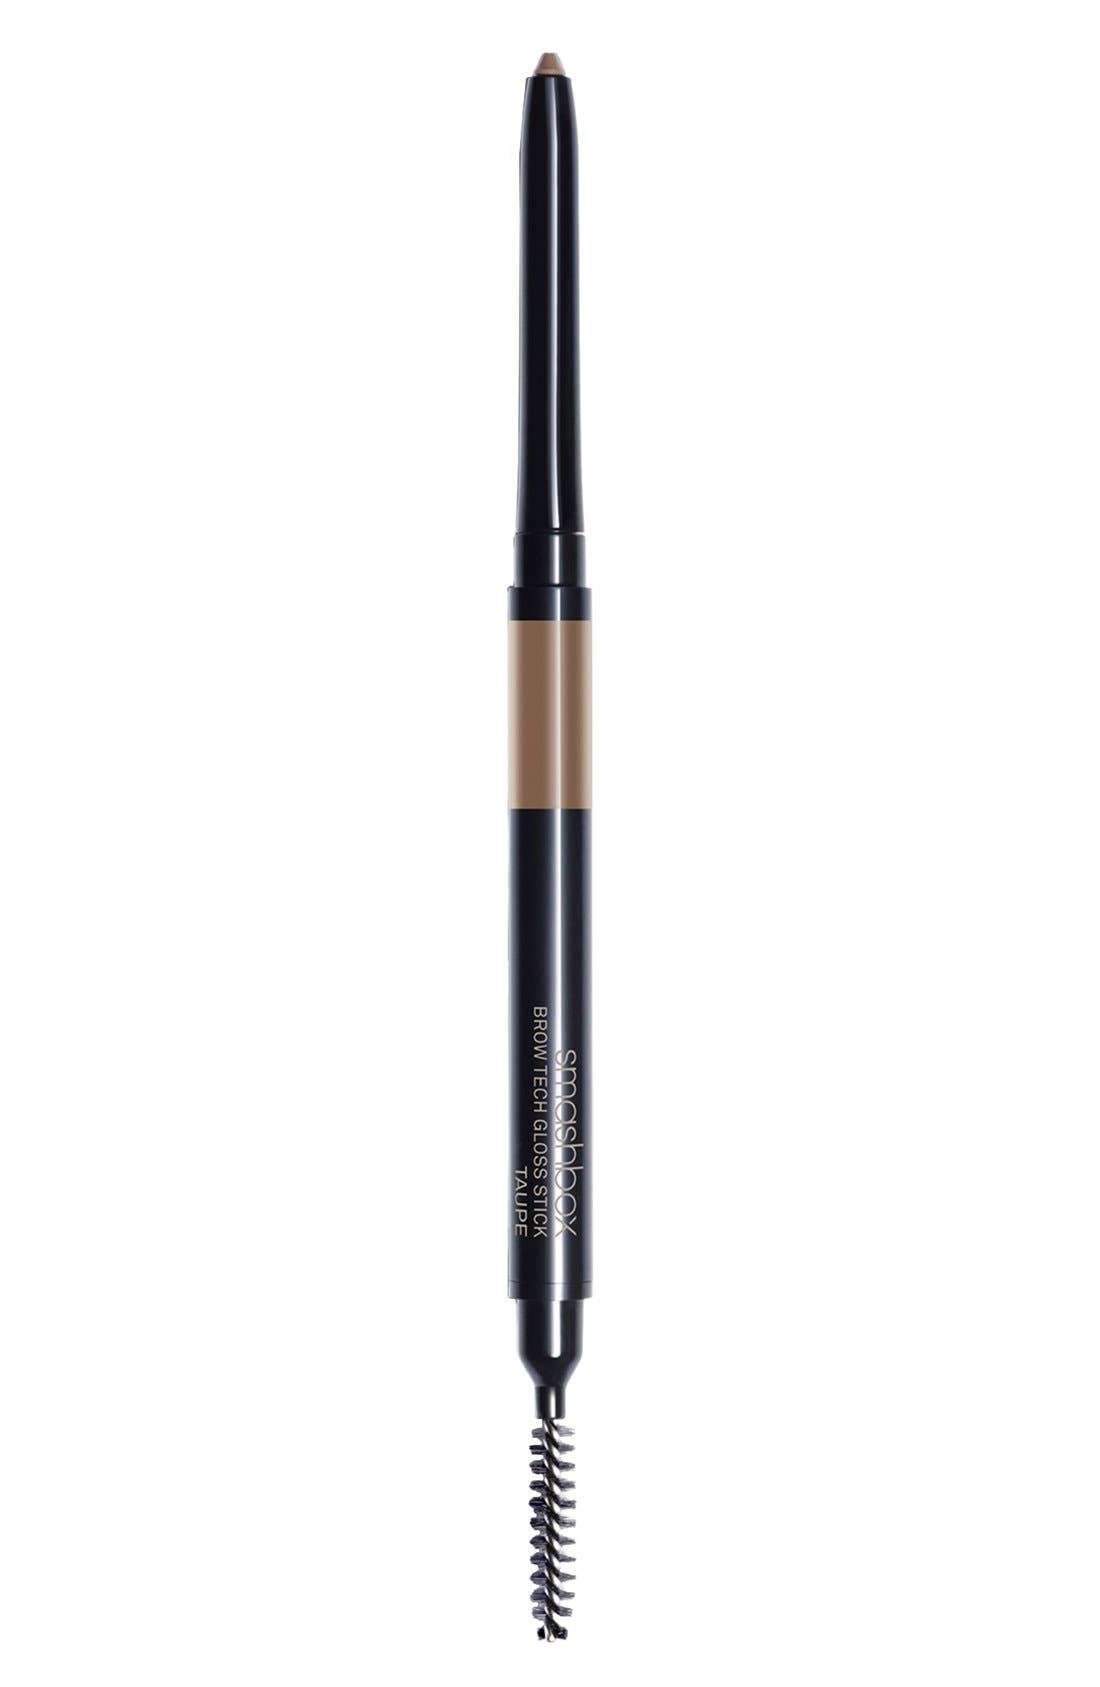 Smashbox Brow Tech Gloss Stick